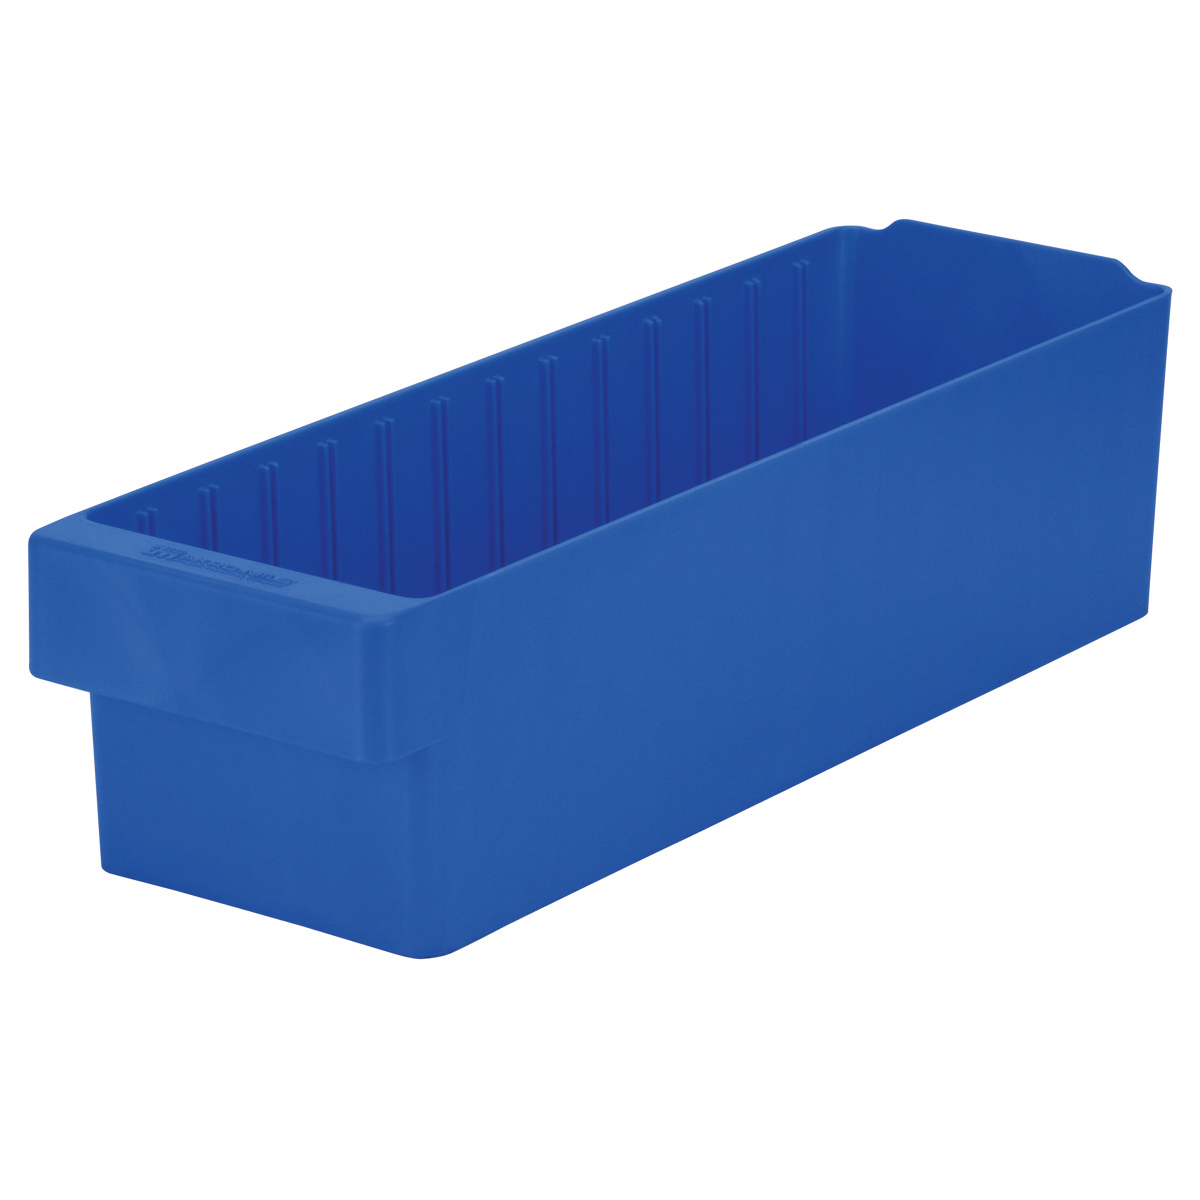 AkroDrawer 17-5/8 x 5-5/8 x 4-5/8, Blue (31168BLU).  This item sold in carton quantities of 6.